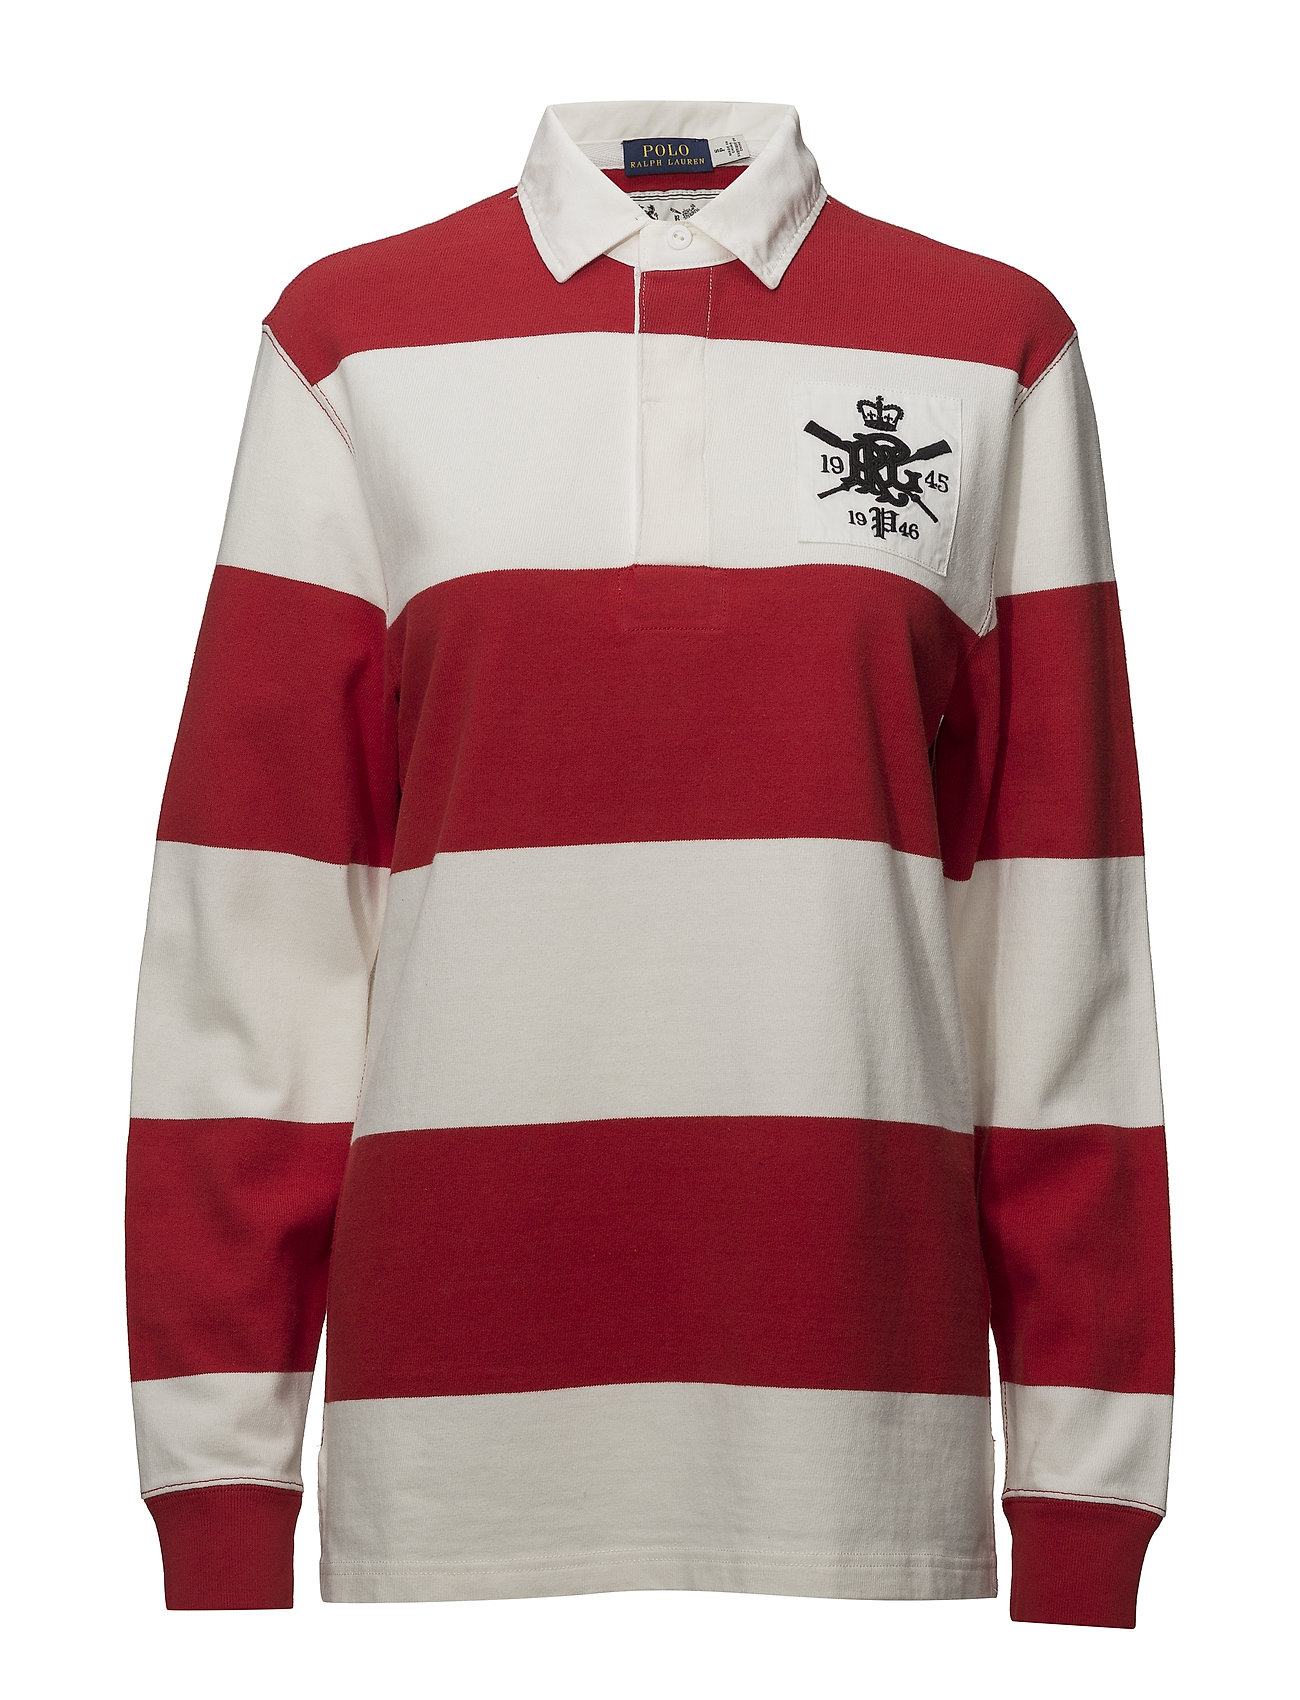 15f413e1f5 Monogram Cotton Rugby Shirt (Rl2000 Red/deckwa) (£90.75) - Polo ...